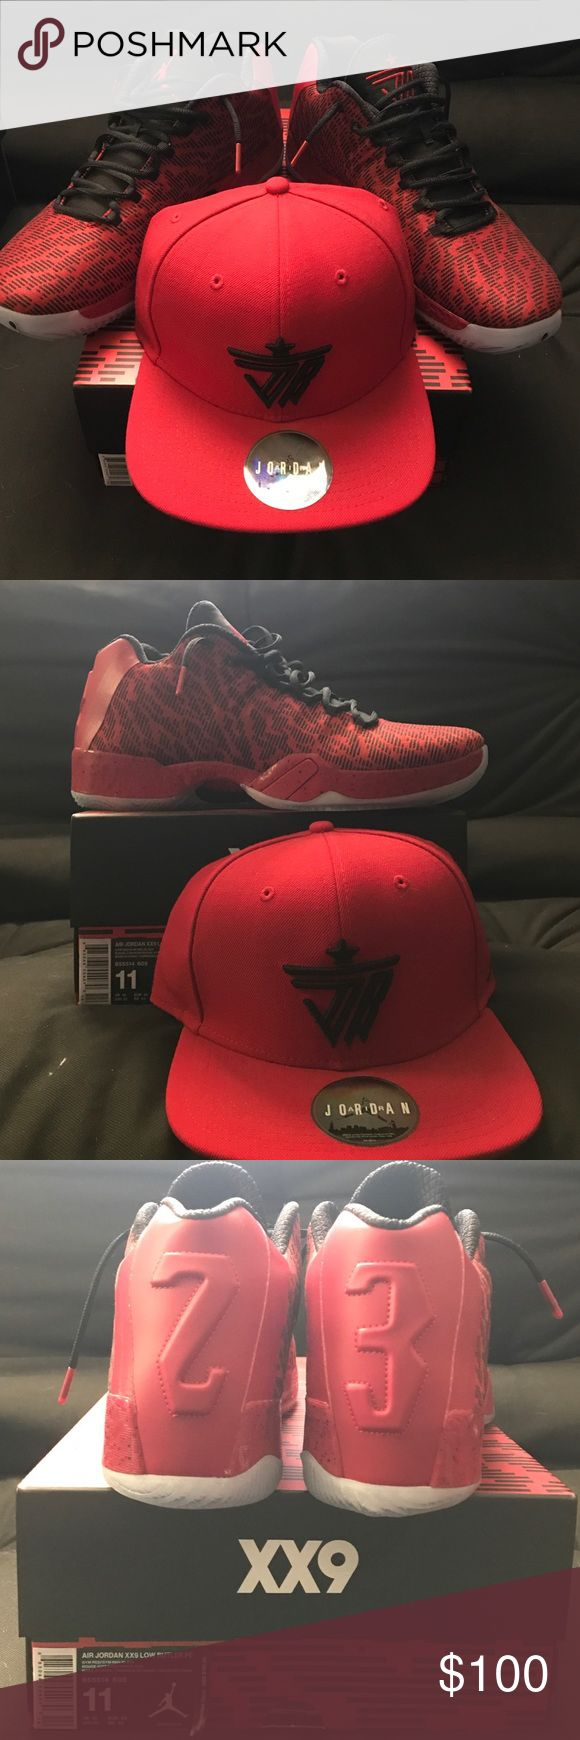 Jordan XX9 Low Jimmy Butler PE size 11 Never Worn For Sale